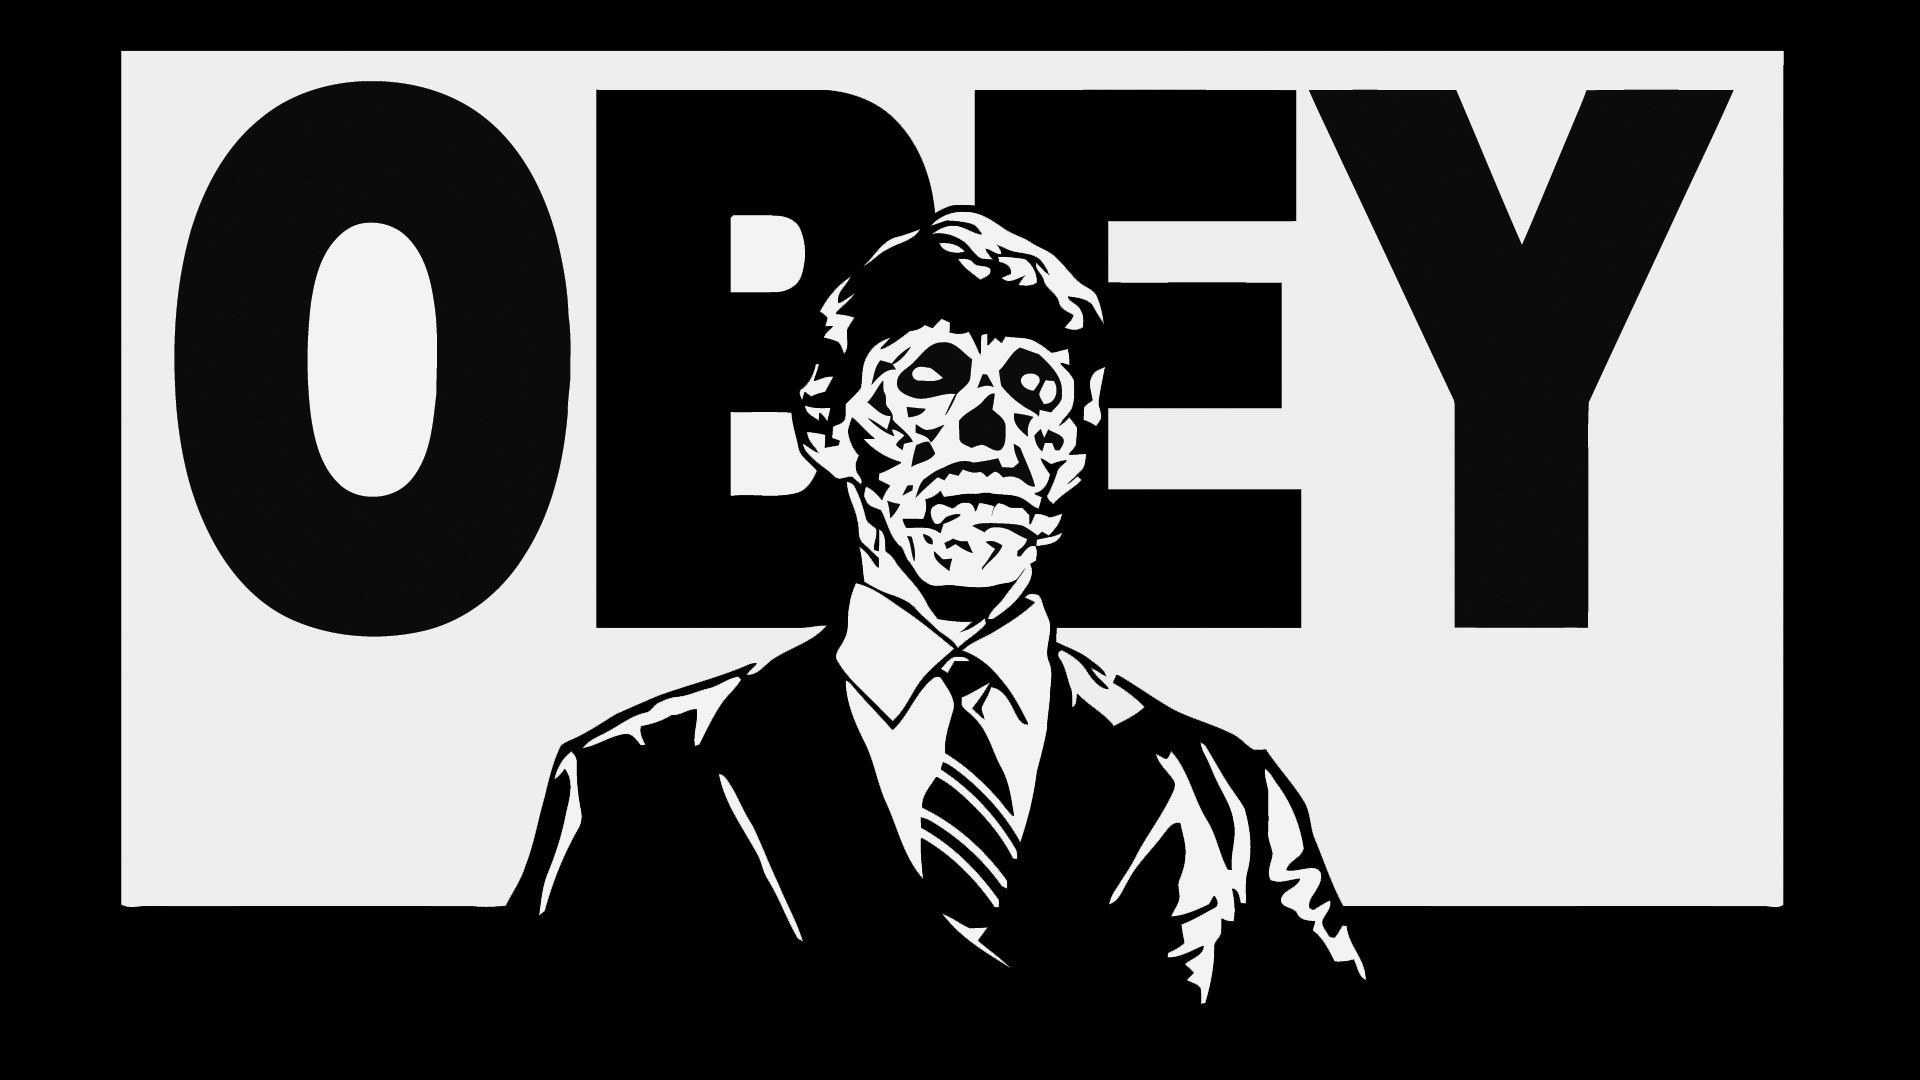 Obey Skeleton Logo Wallpaper